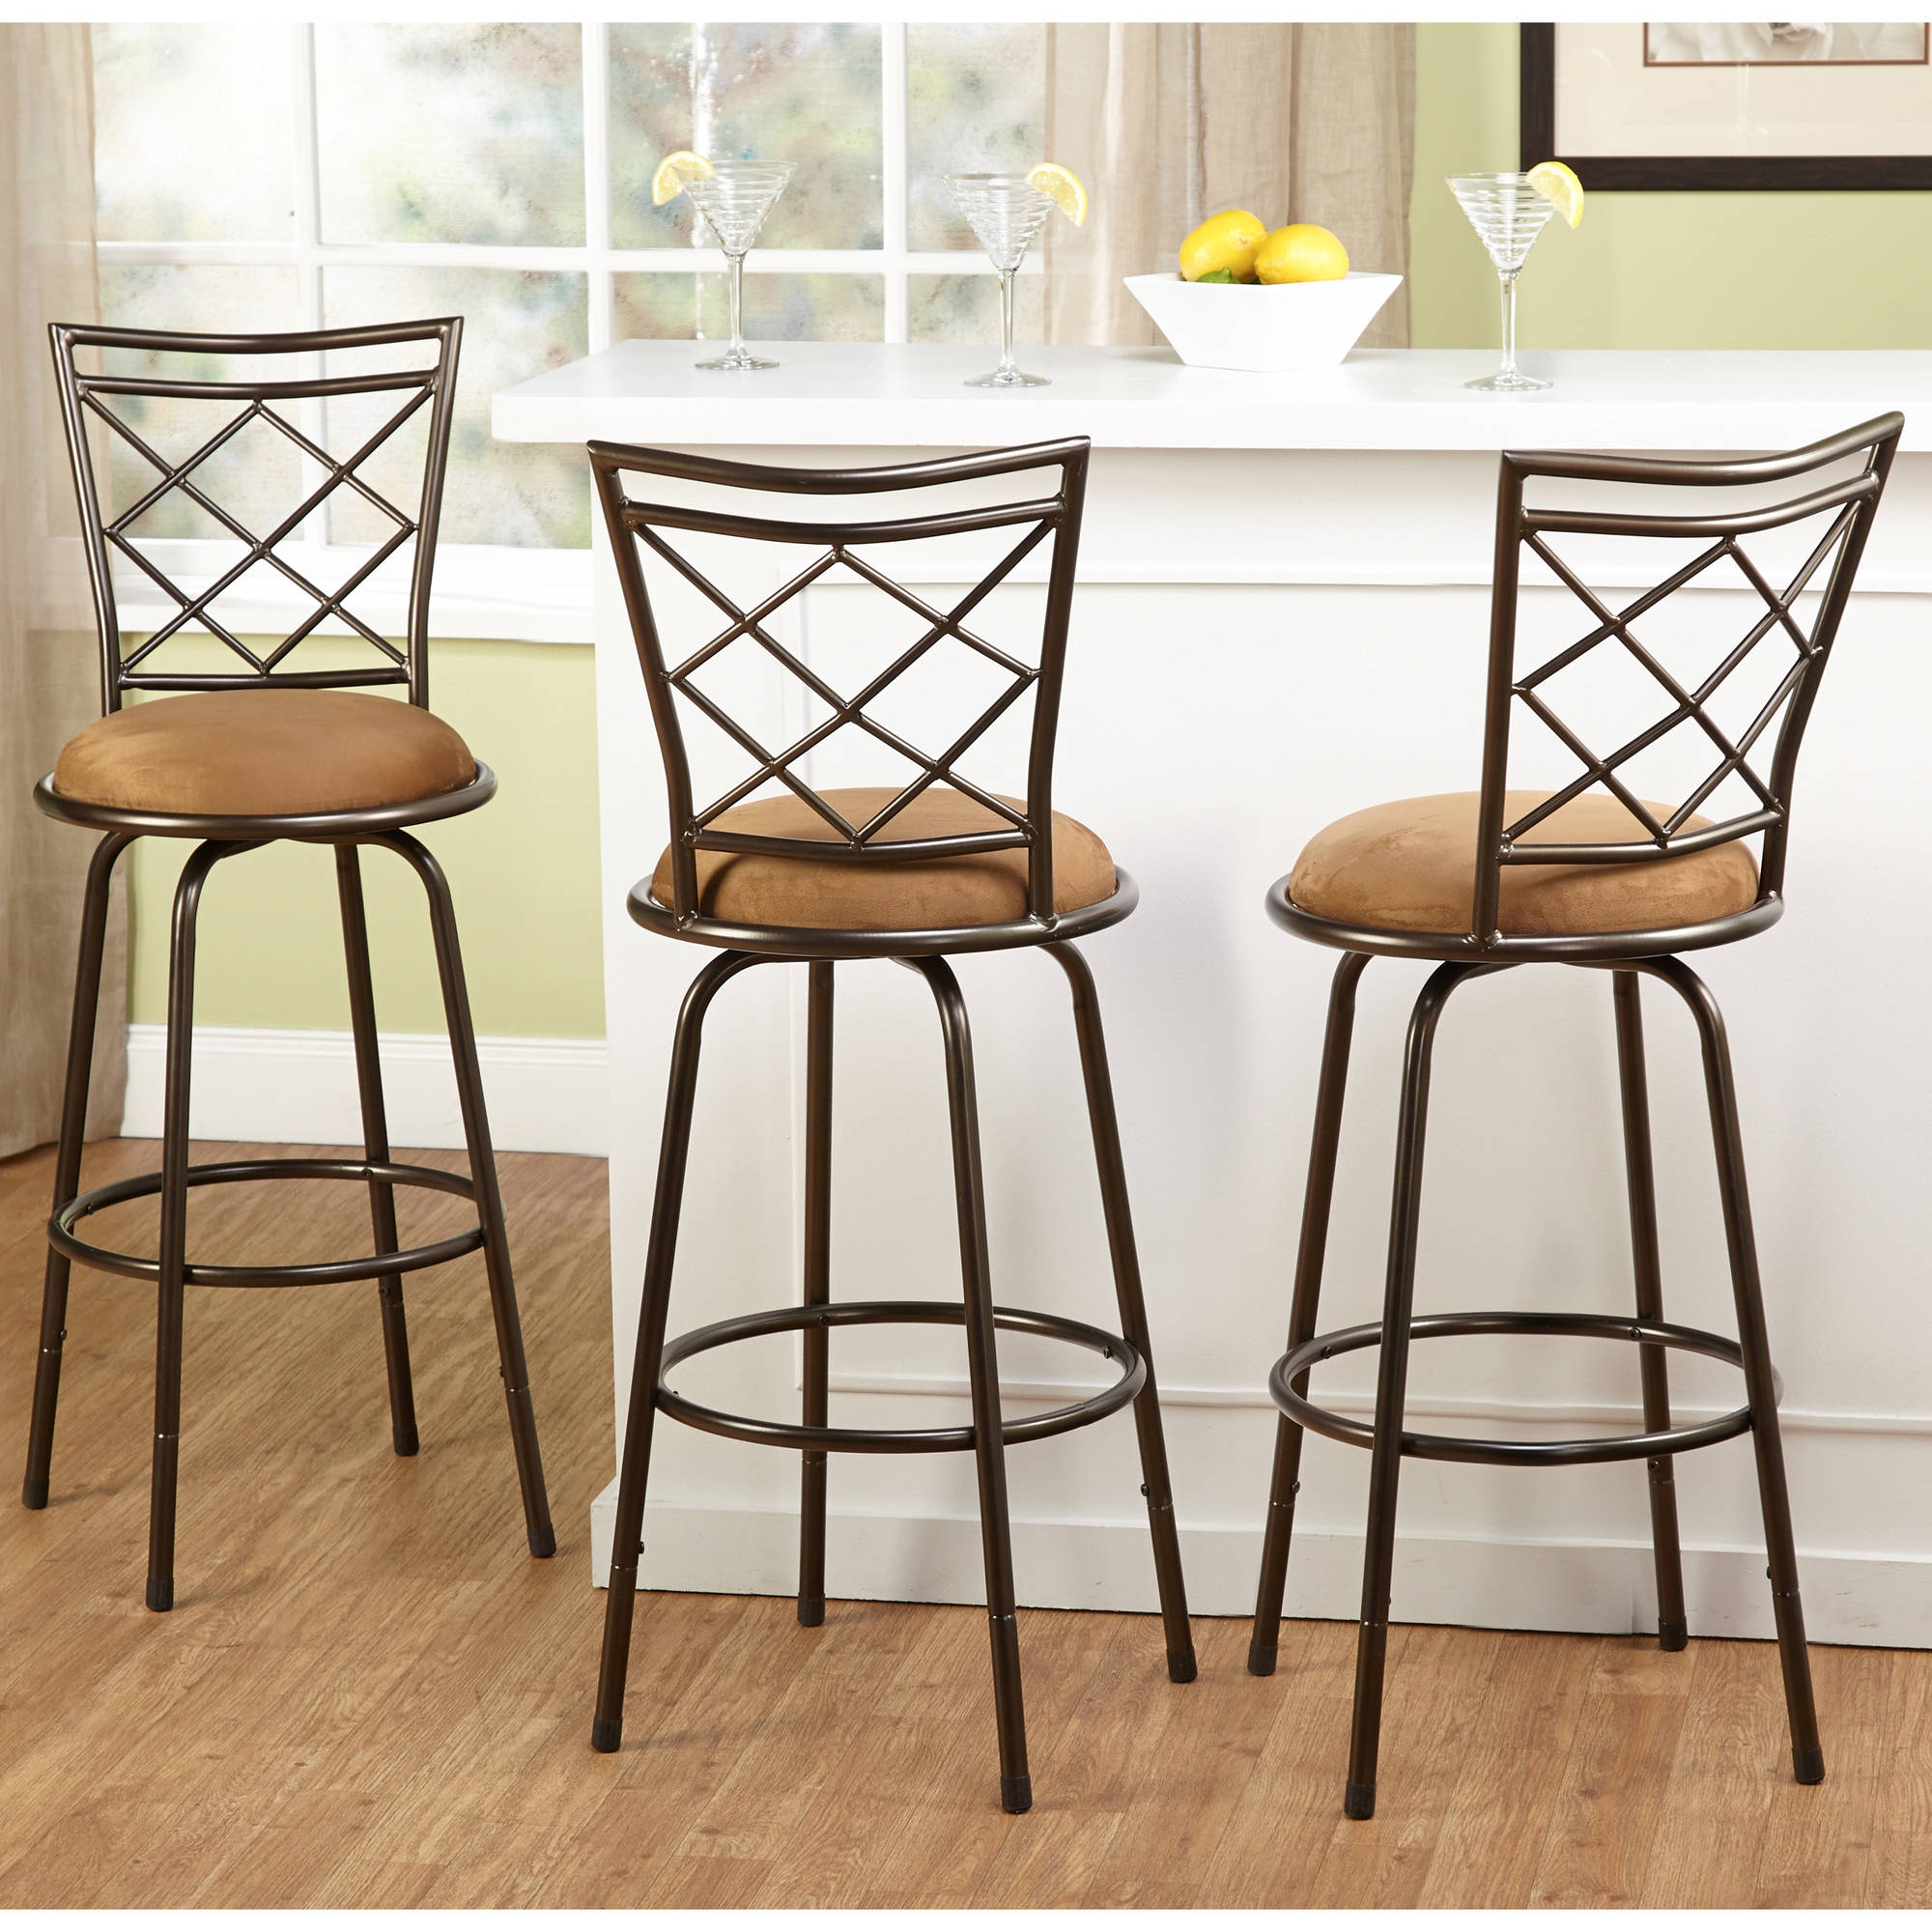 3-Piece Avery Adjustable Height Barstool, Multiple Colors